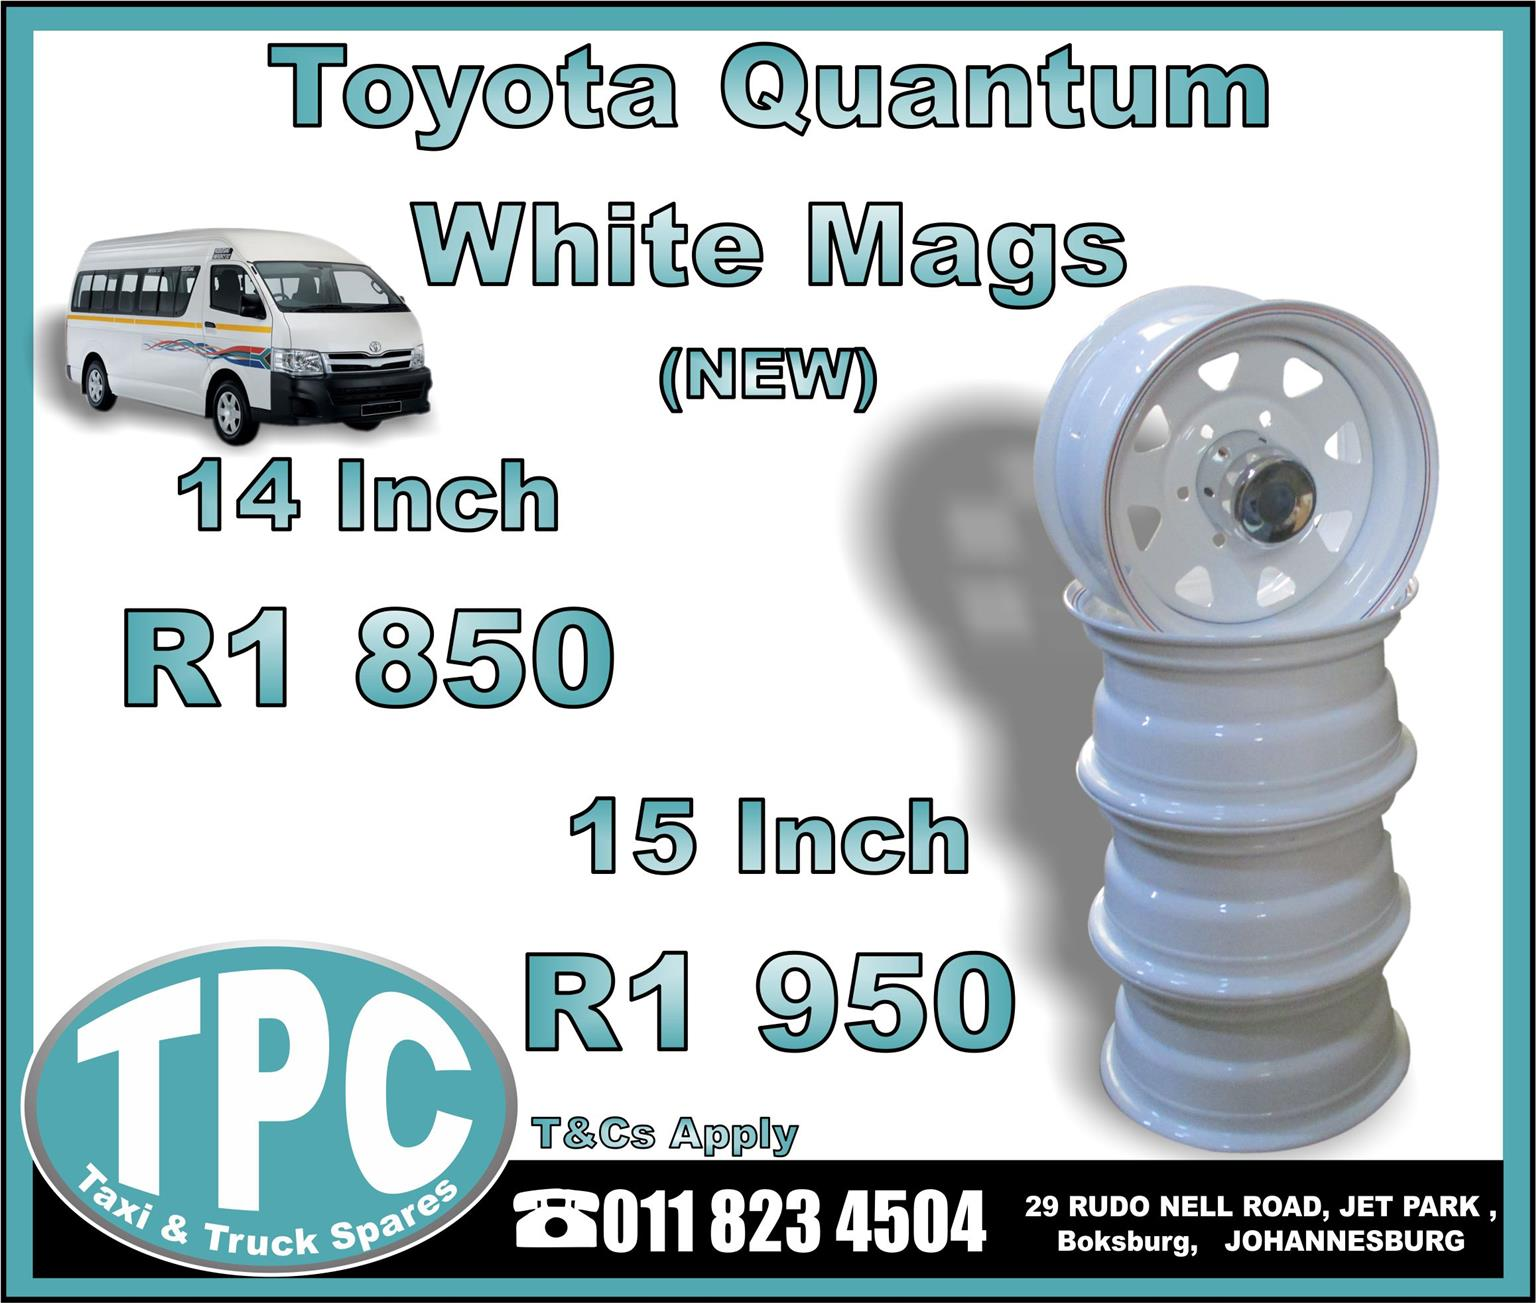 Toyota Quantum White Mags 14/15 Inch - NEW - New And Used Replacement Taxi Parts - TPC.